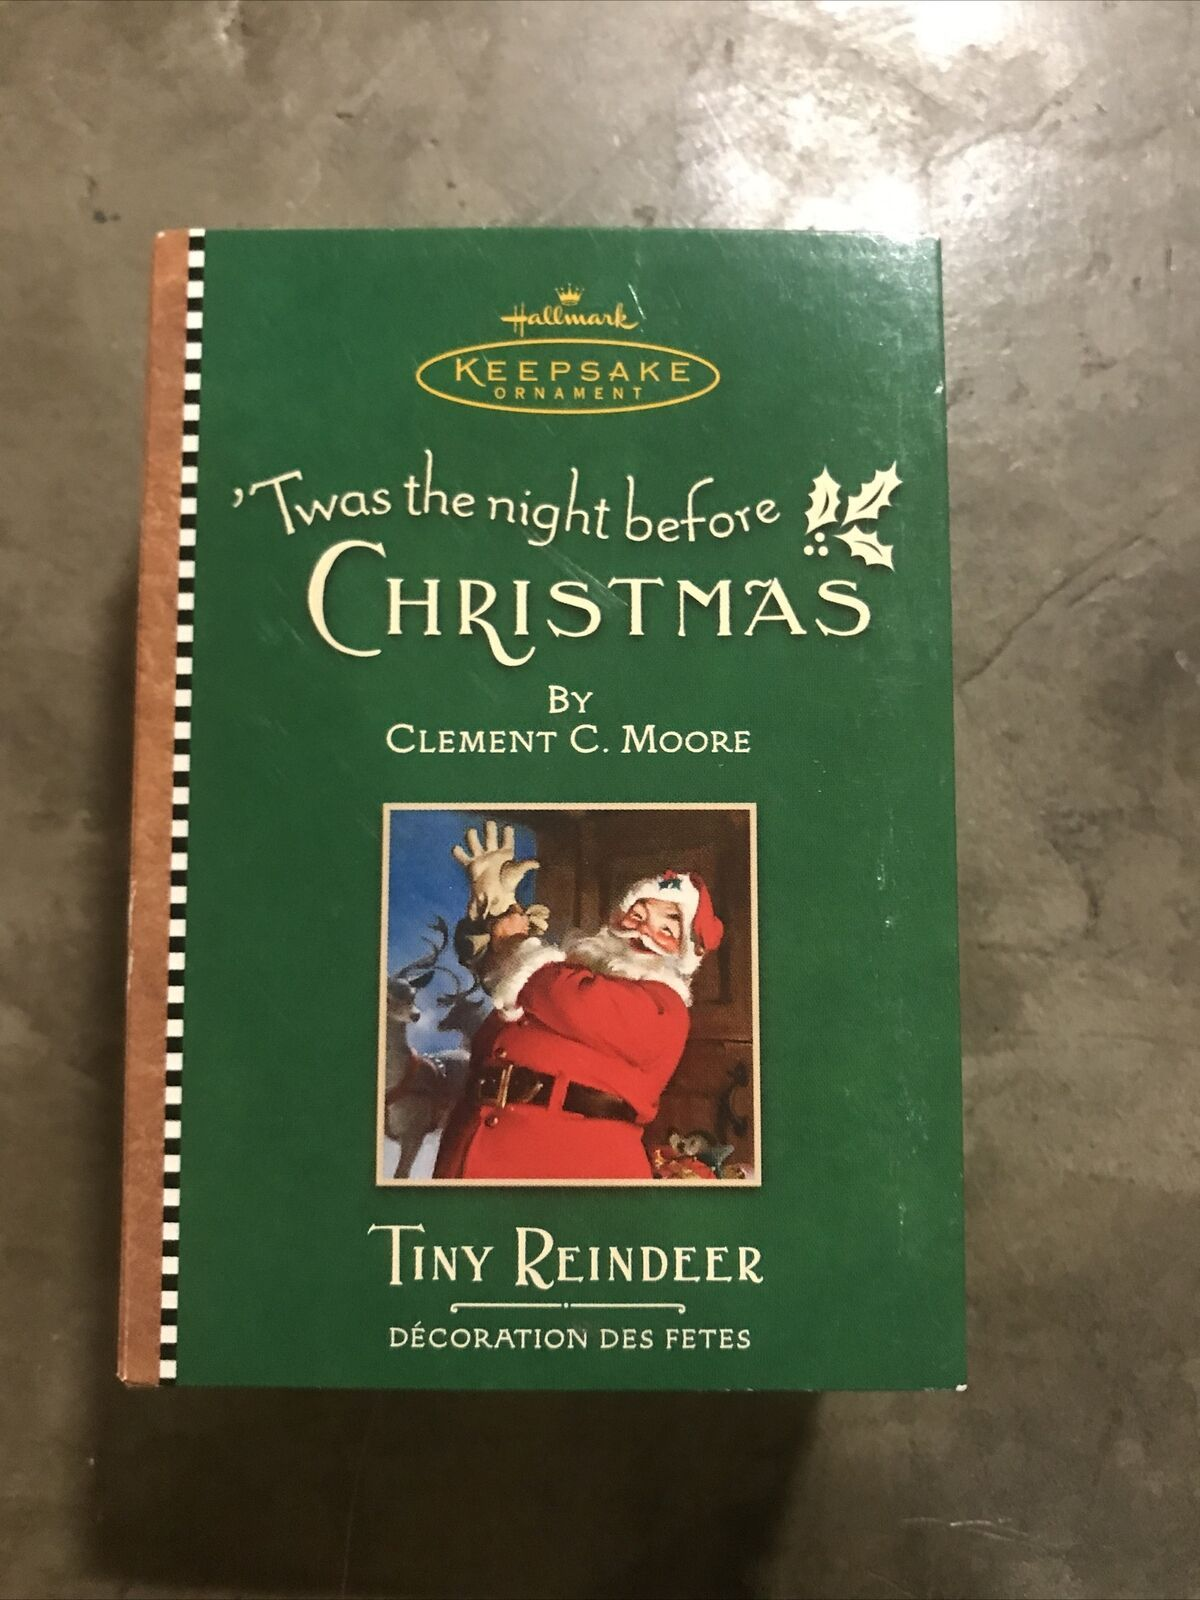 Primary image for 2001 Hallmark Ornament Tiny Reindeer 3rd in Twas The Night Before Christmas NIB